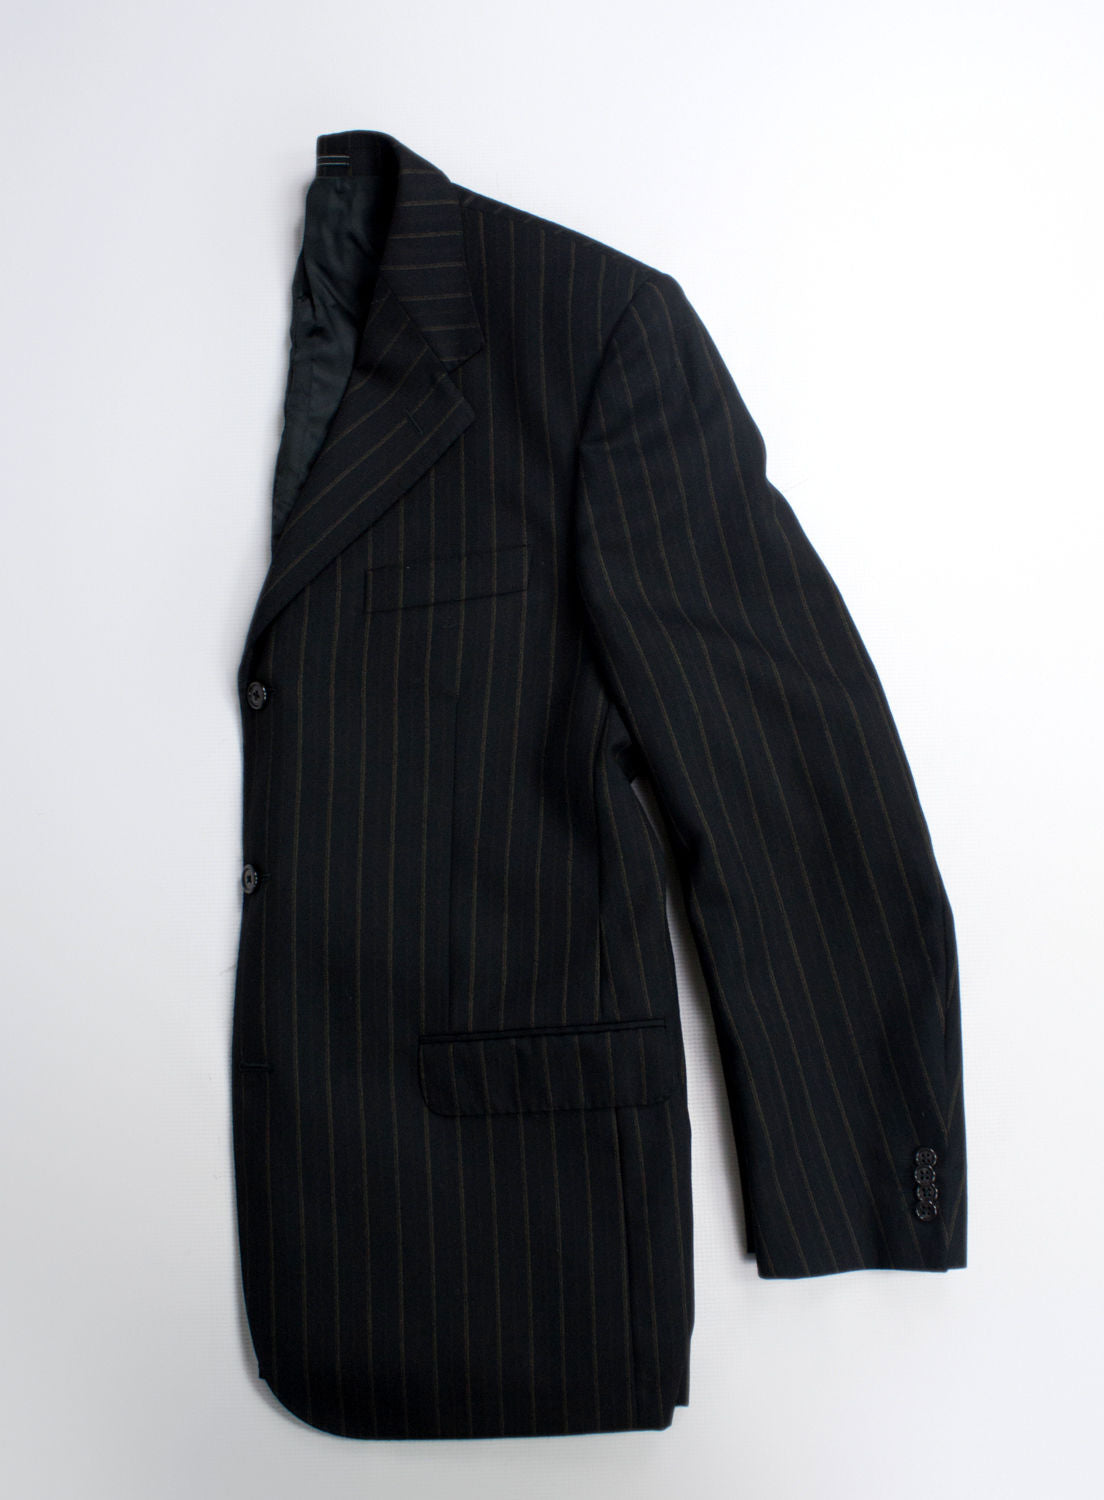 CORNELIANI Wool Striped Black Blazer, USA 42R/EUR 52R - secondfirst